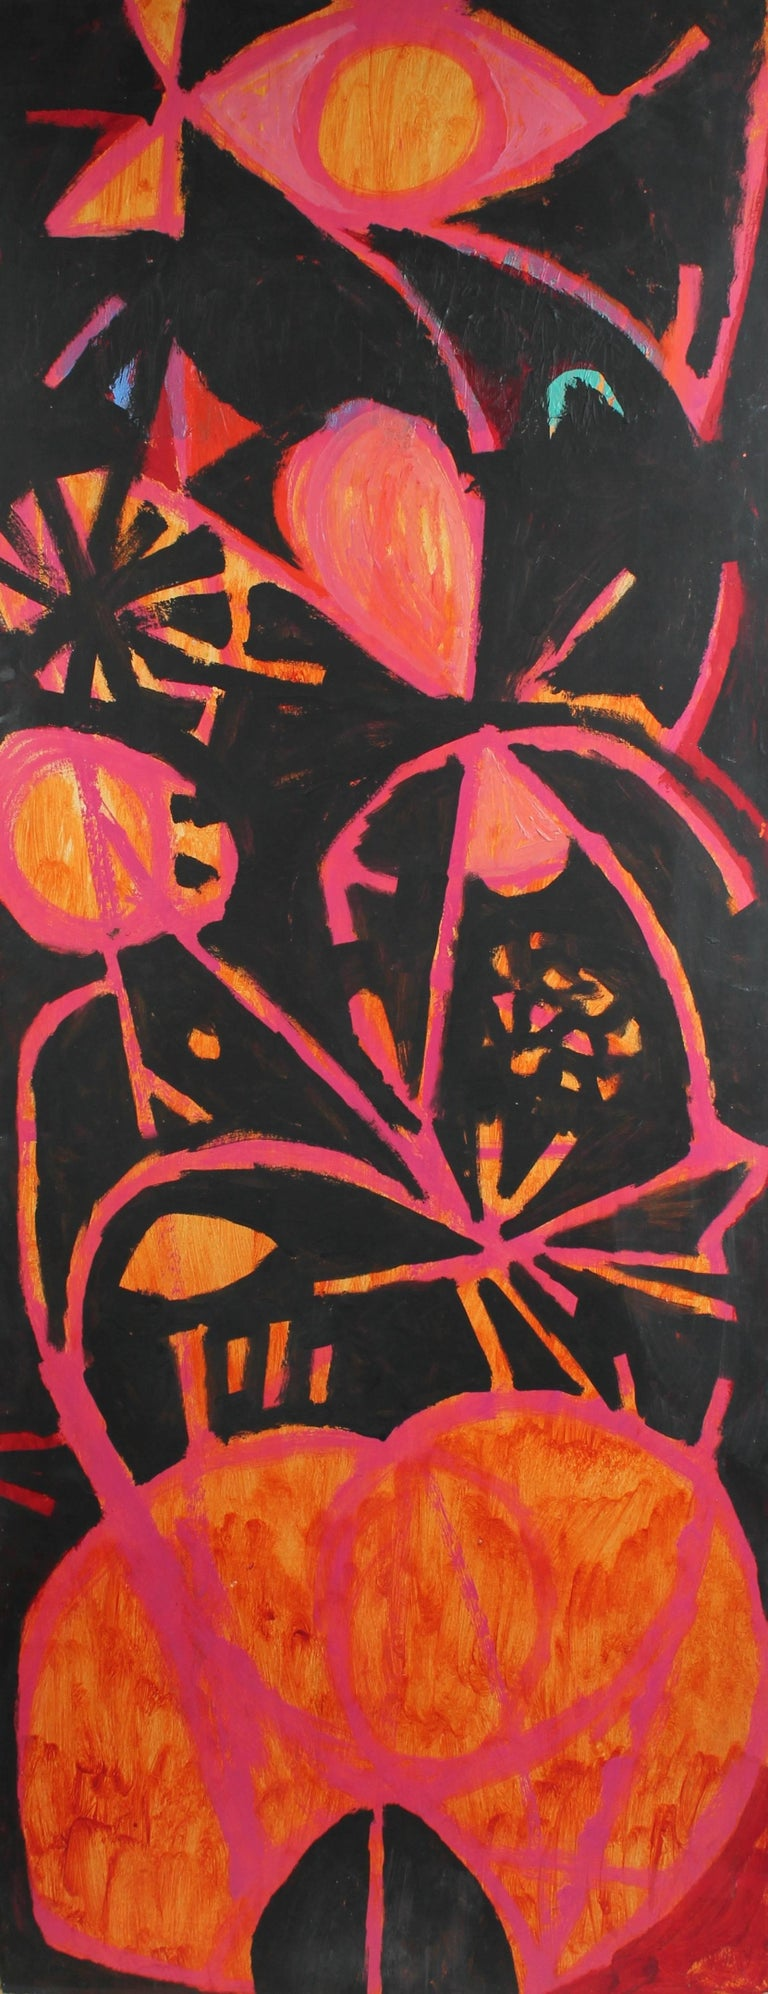 Calvin Anderson Abstract Painting - Large Modernist Abstract in Pink, Black, & Orange, Oil Painting, Circa 1950s